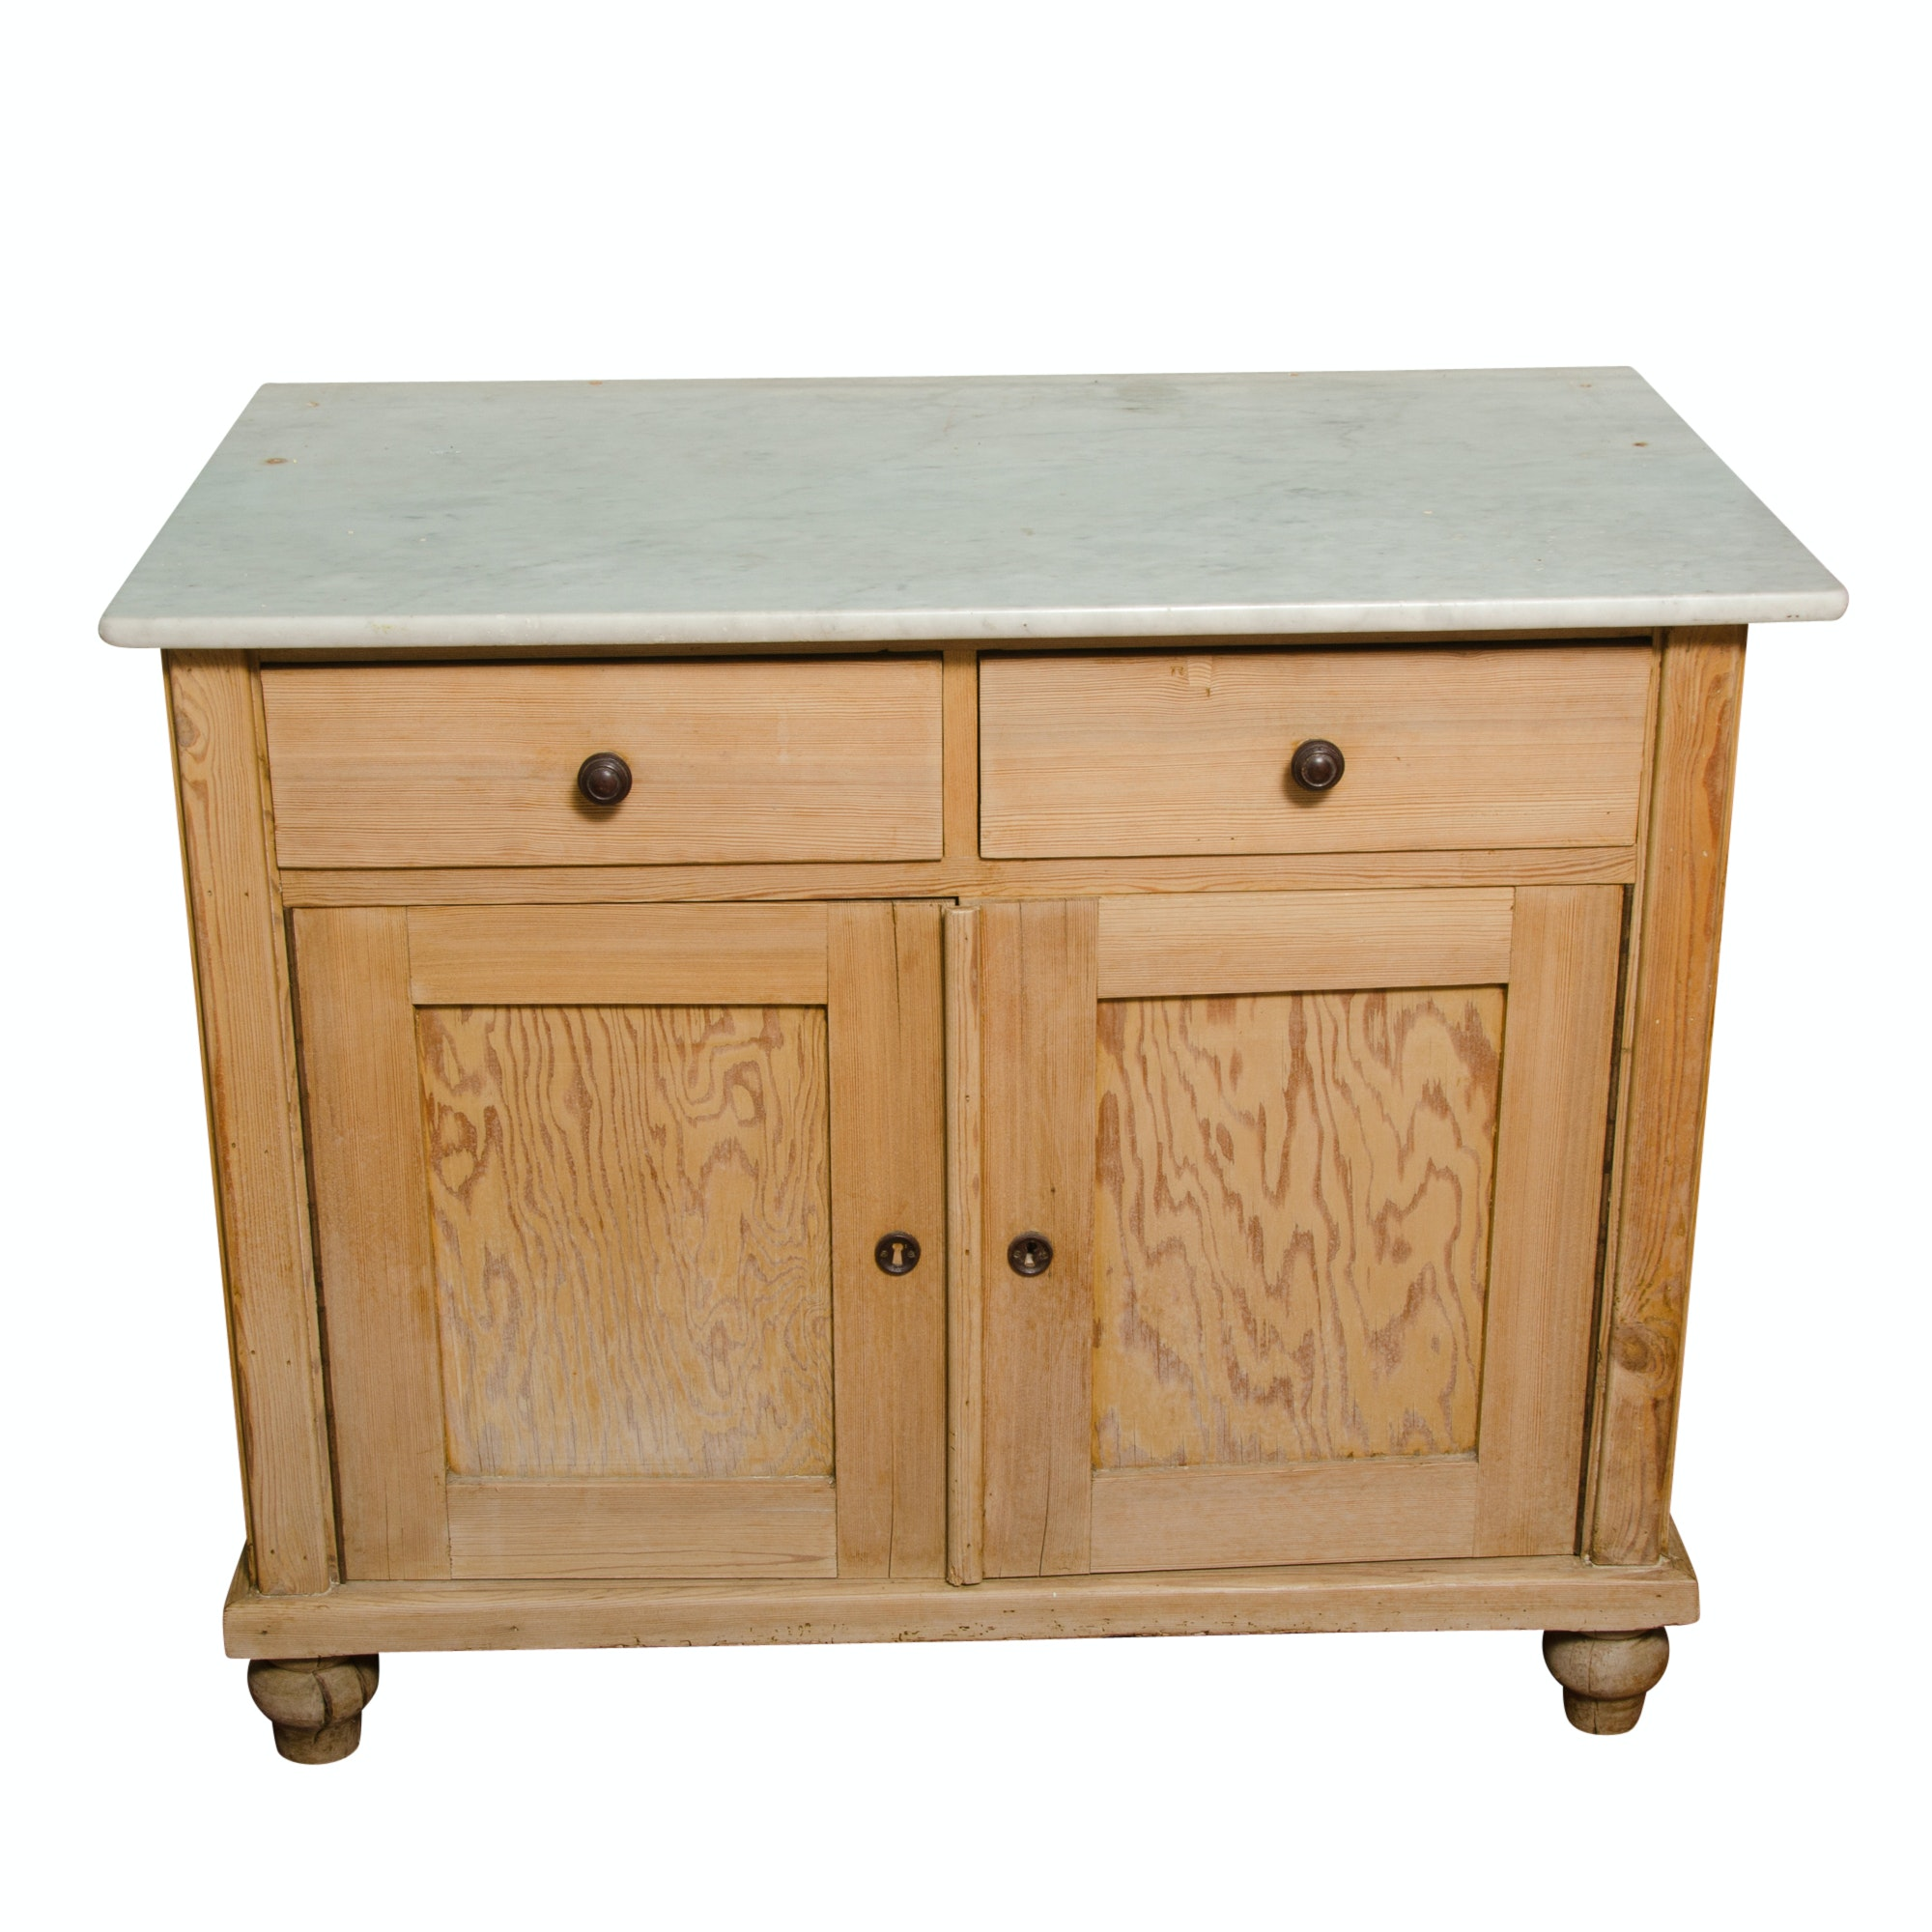 Antique Marble Top Pine Cabinet